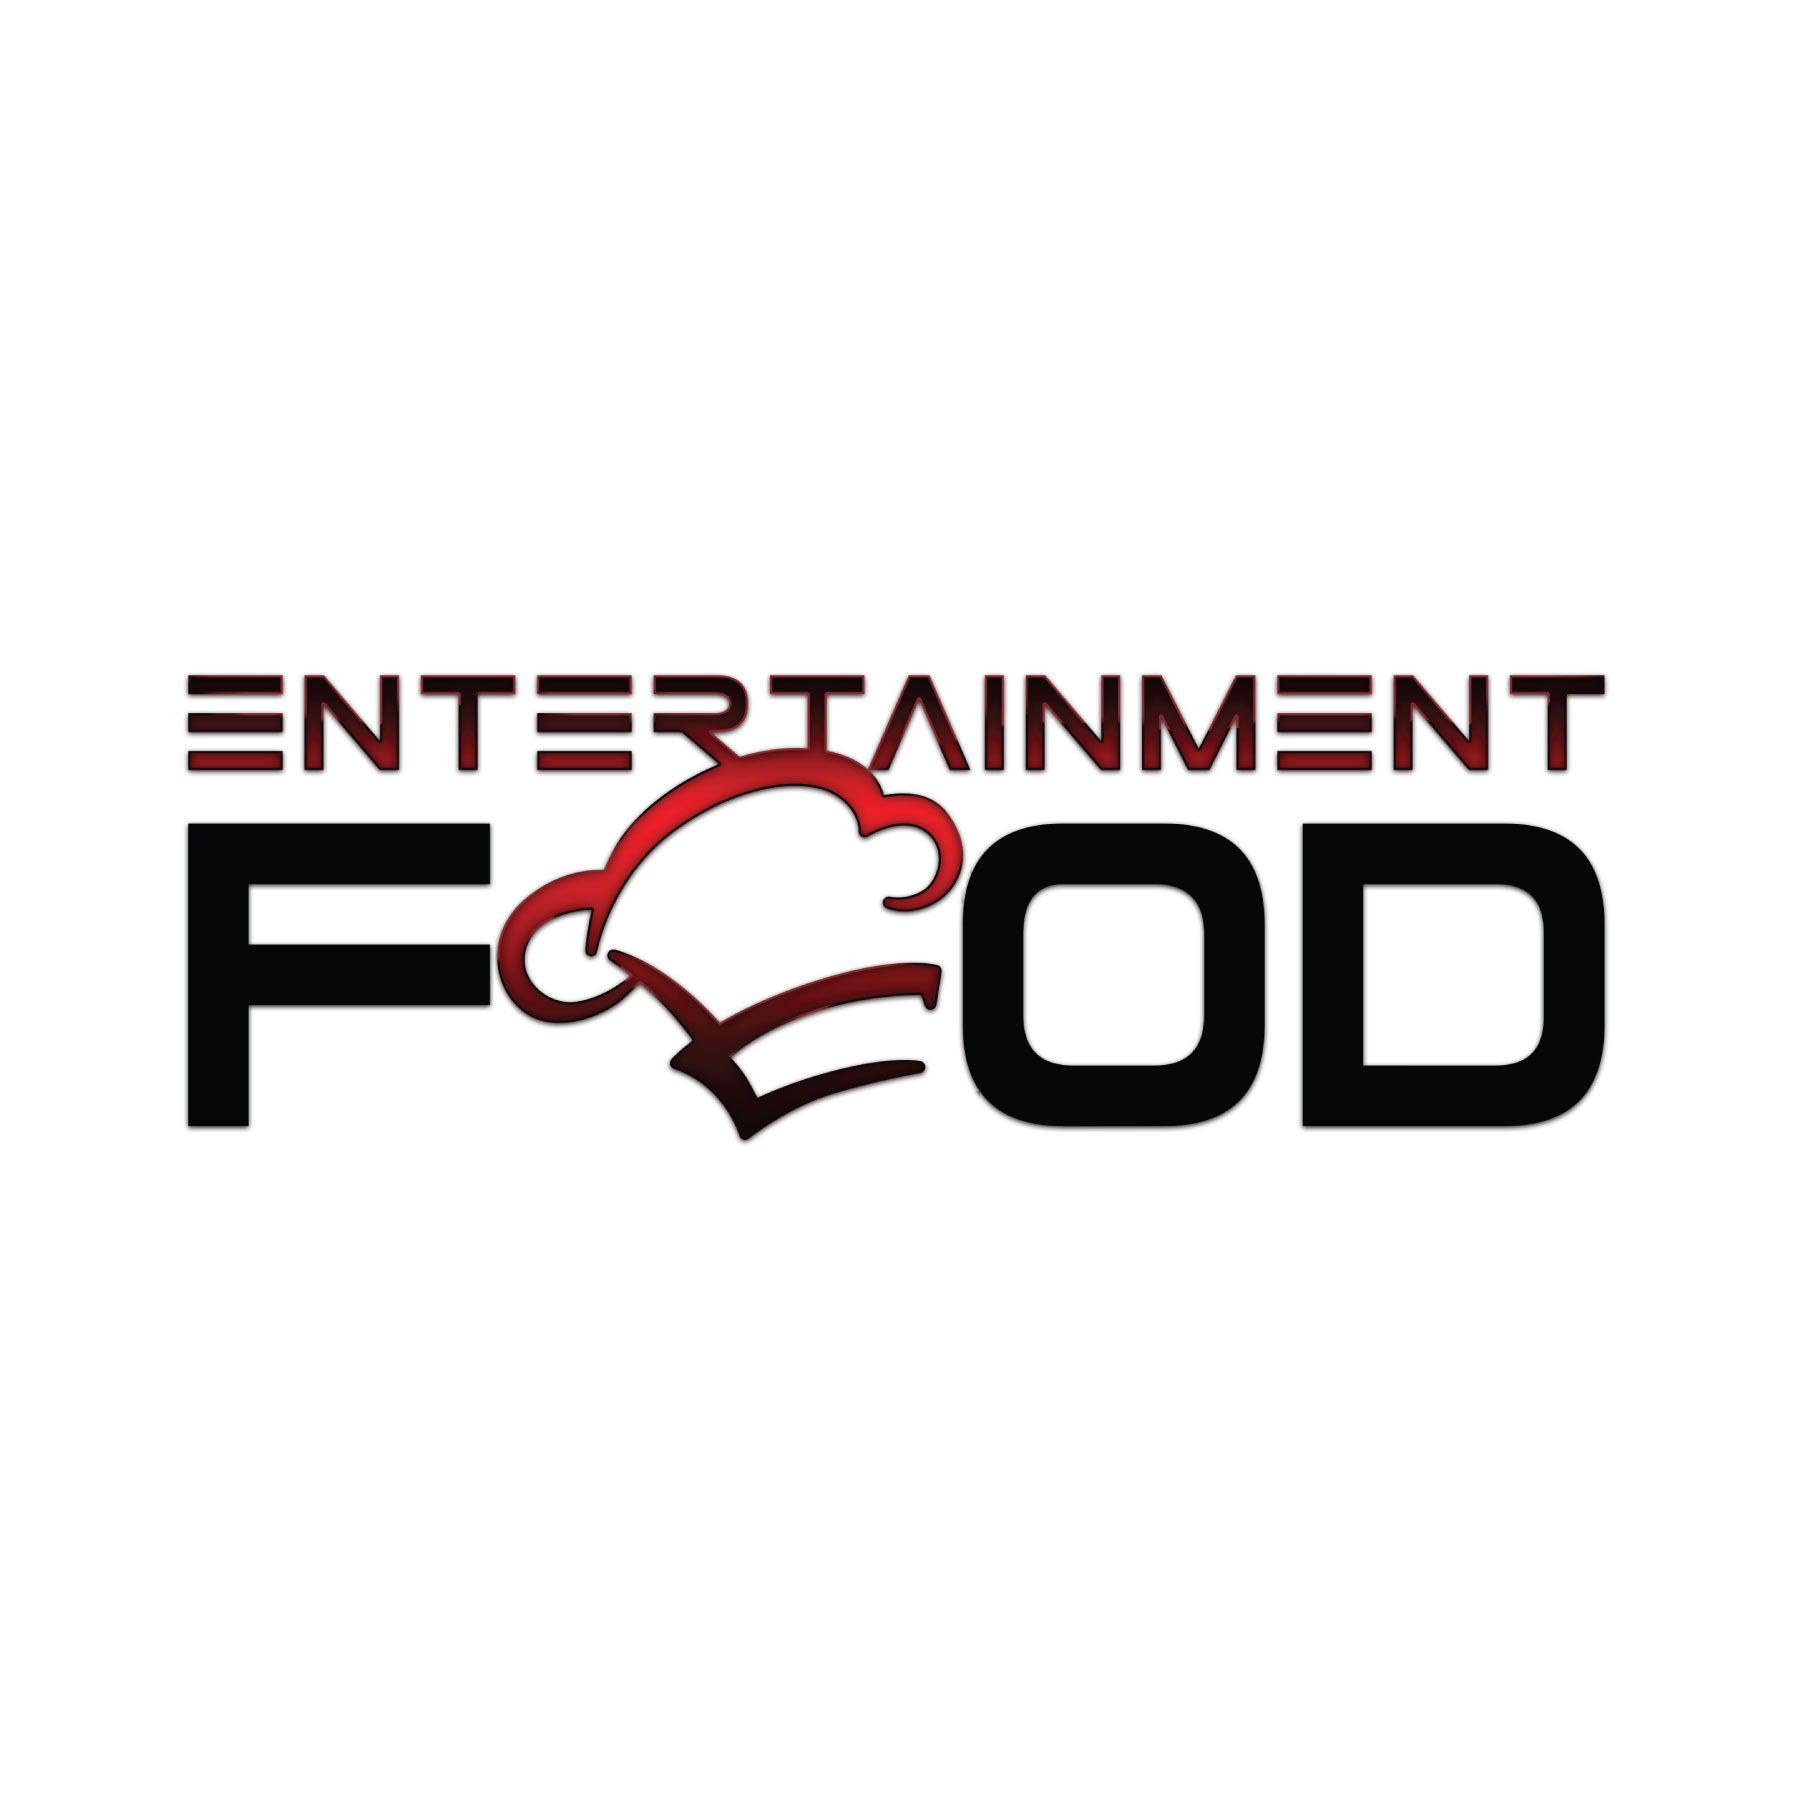 Entertainment Food